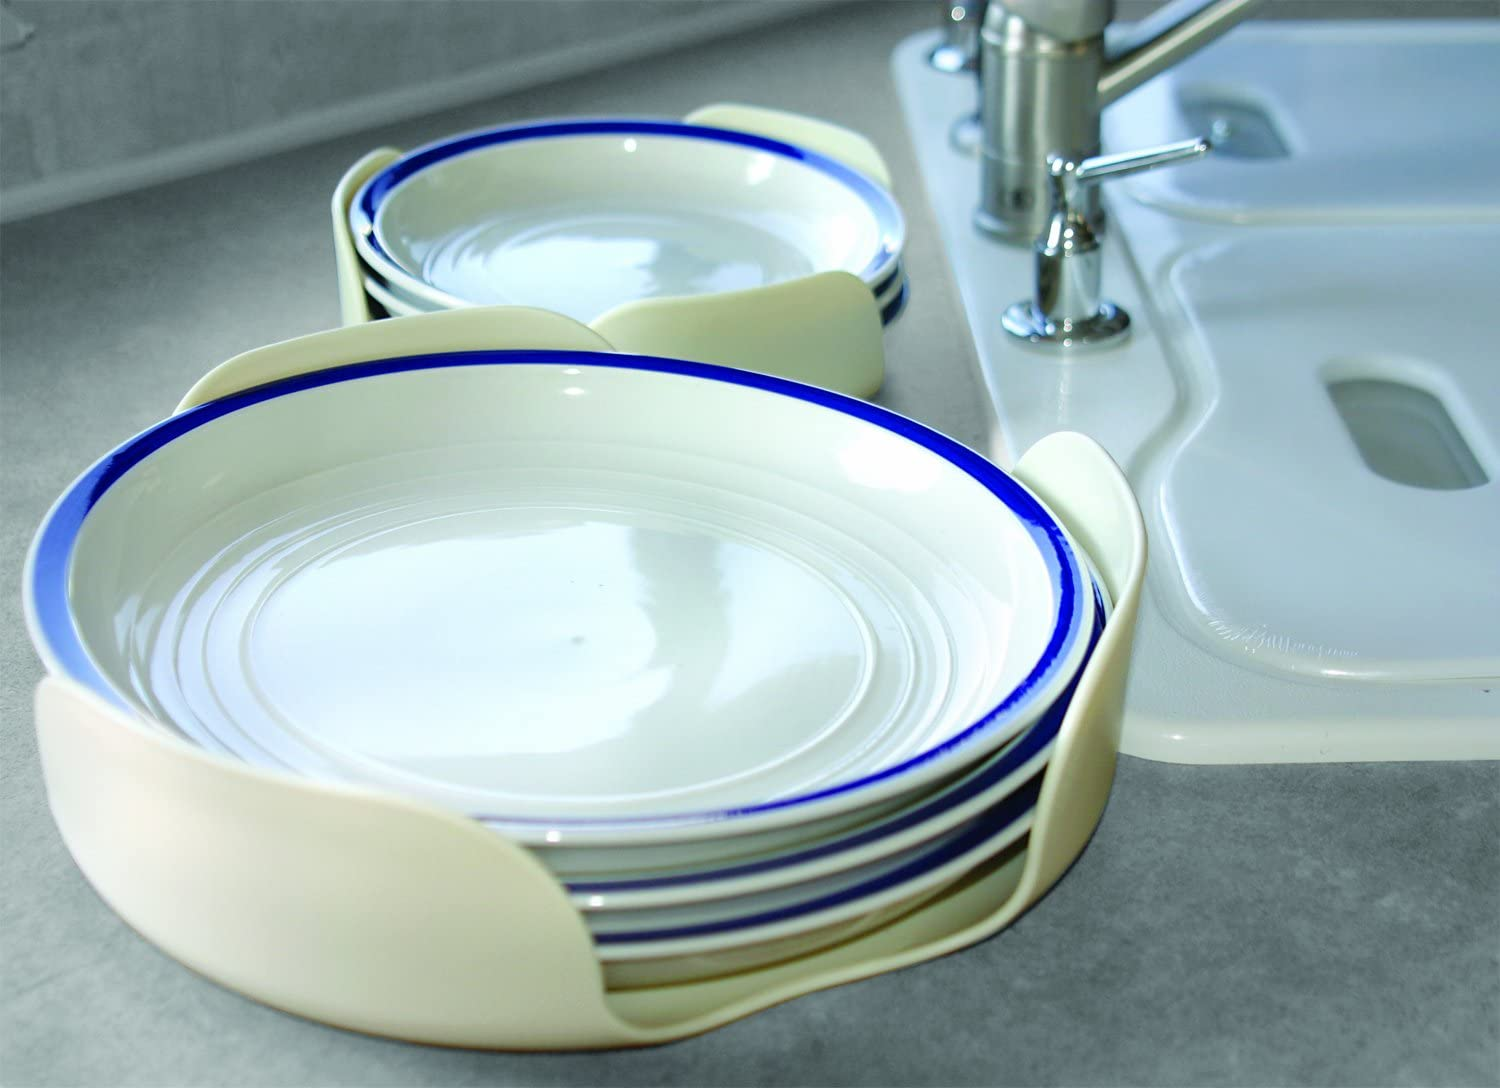 Camco Stack-A-Plate- Easily Organize, Store And Protect Plates During RV Travel, Non-Slip Backing